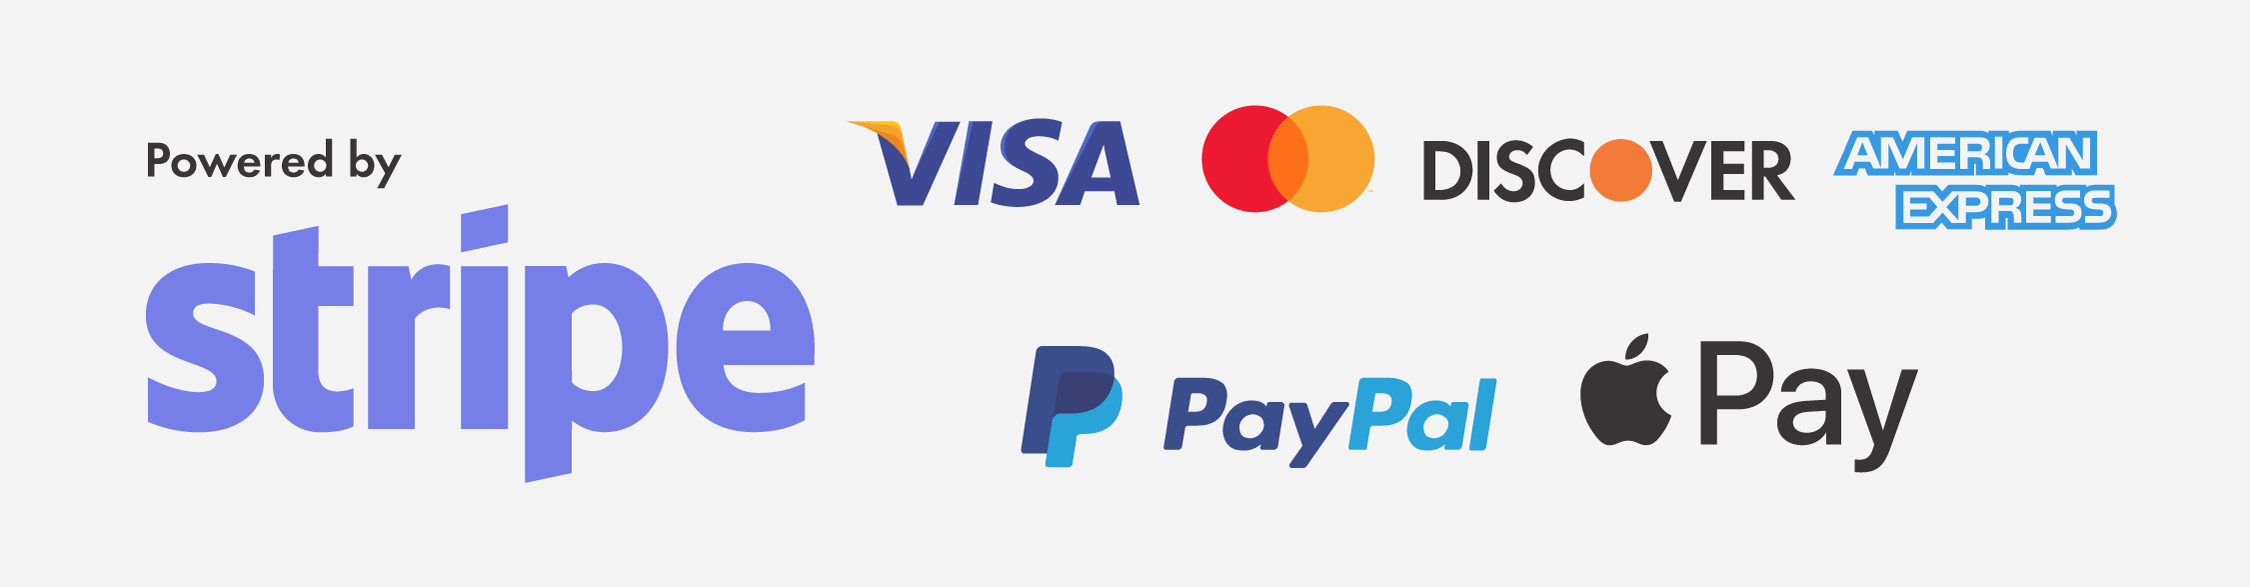 Daily-Supp-Club-Secure-Checkout-Payment-Methods.png